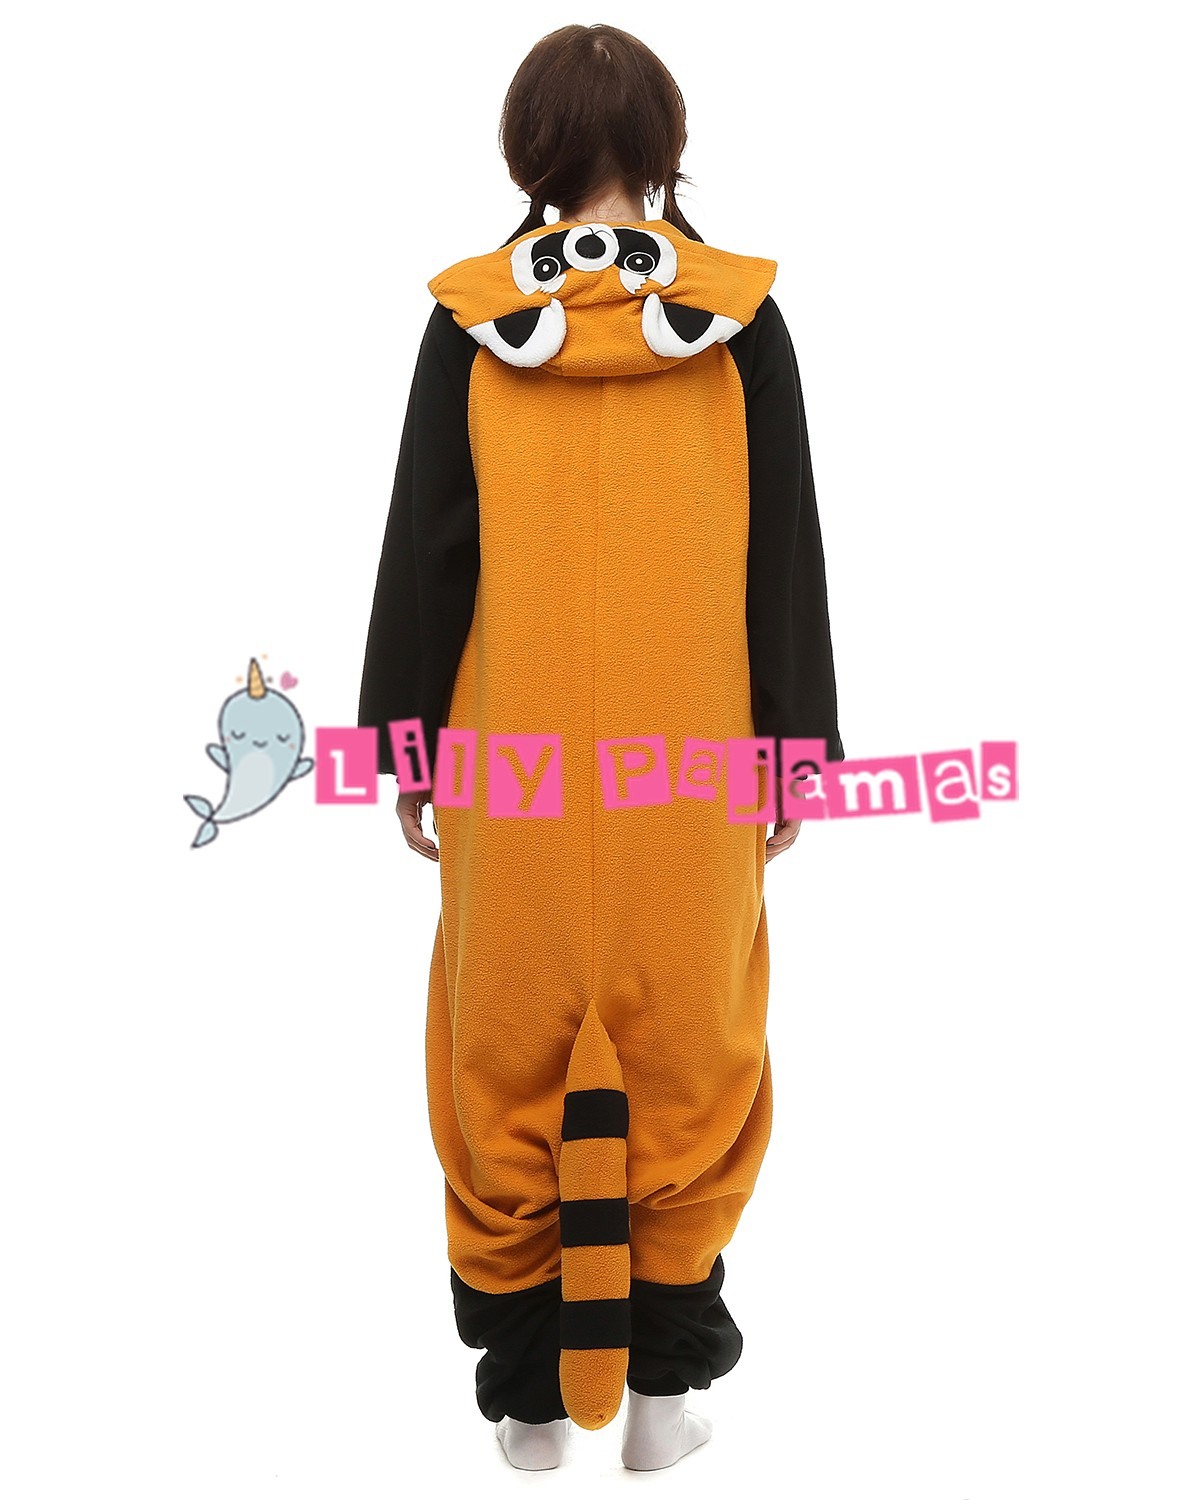 Image of: Kids Red Panda Onesie Pajamas Polar Fleece Kigurumicom Red Panda Onesie Kigurumi Pajamas For Adults Polar Fleece Animal